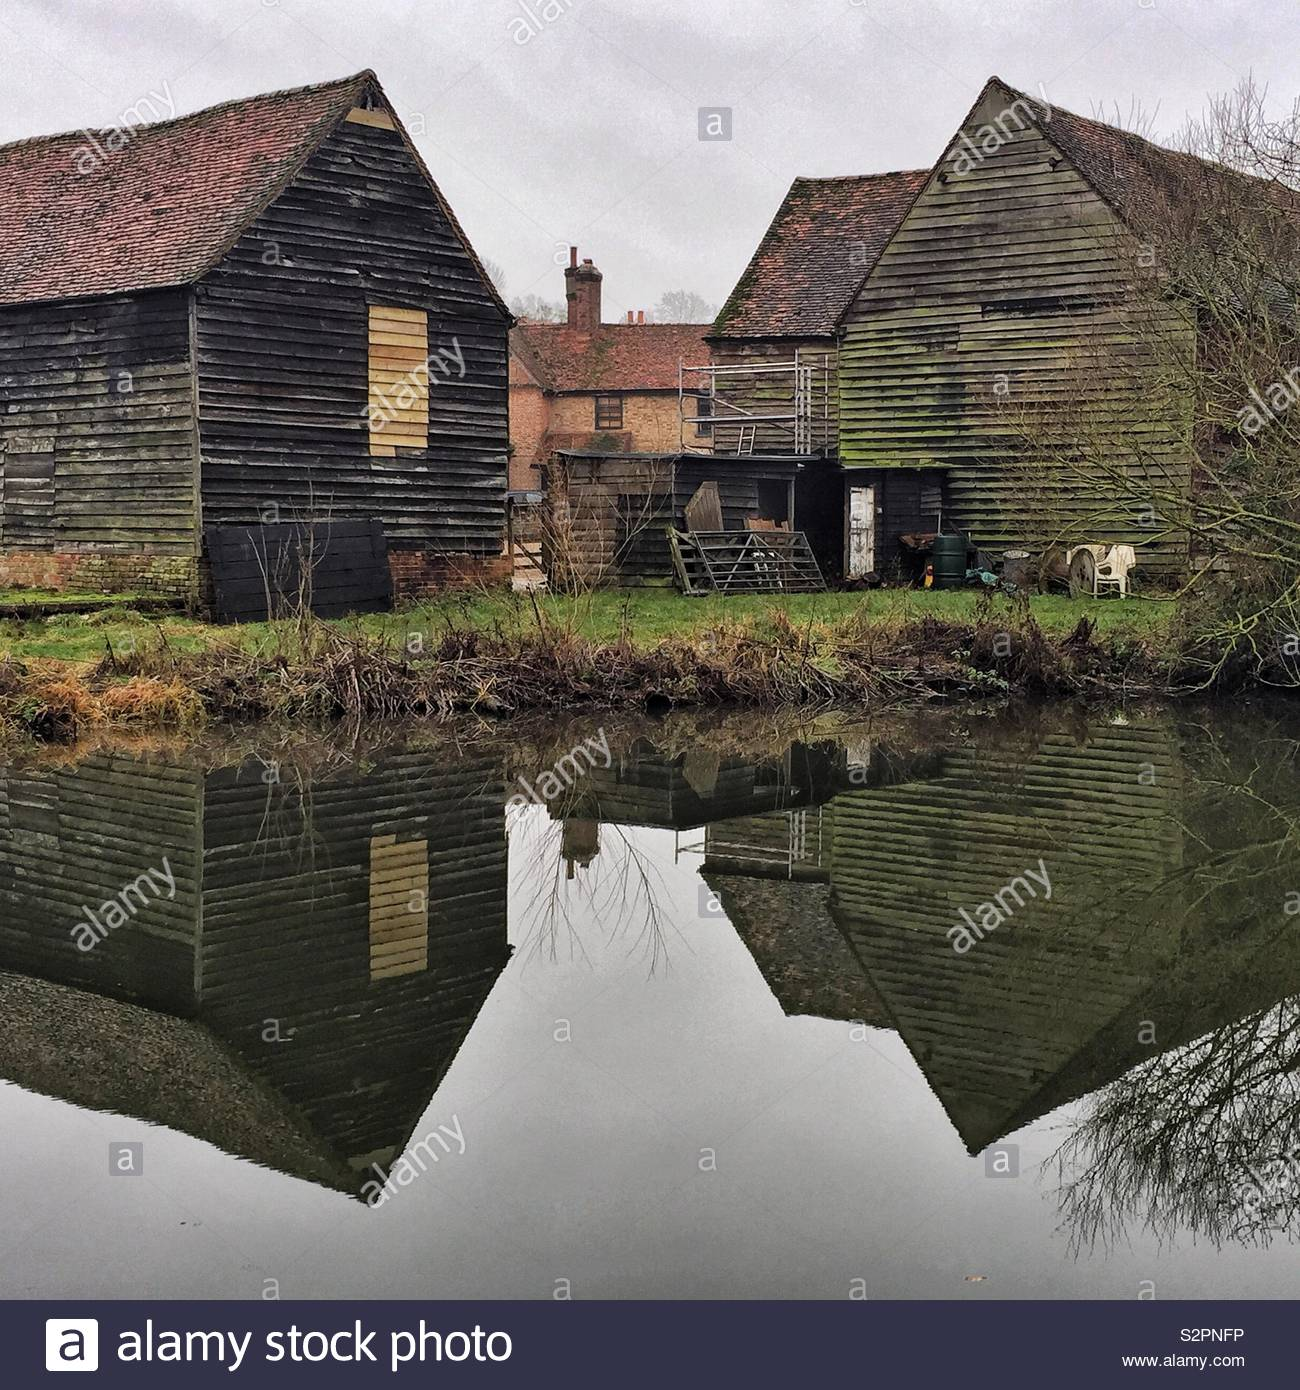 The reflection of two wooden barns in The Grand Union Canal near Rickmansworth - Stock Image